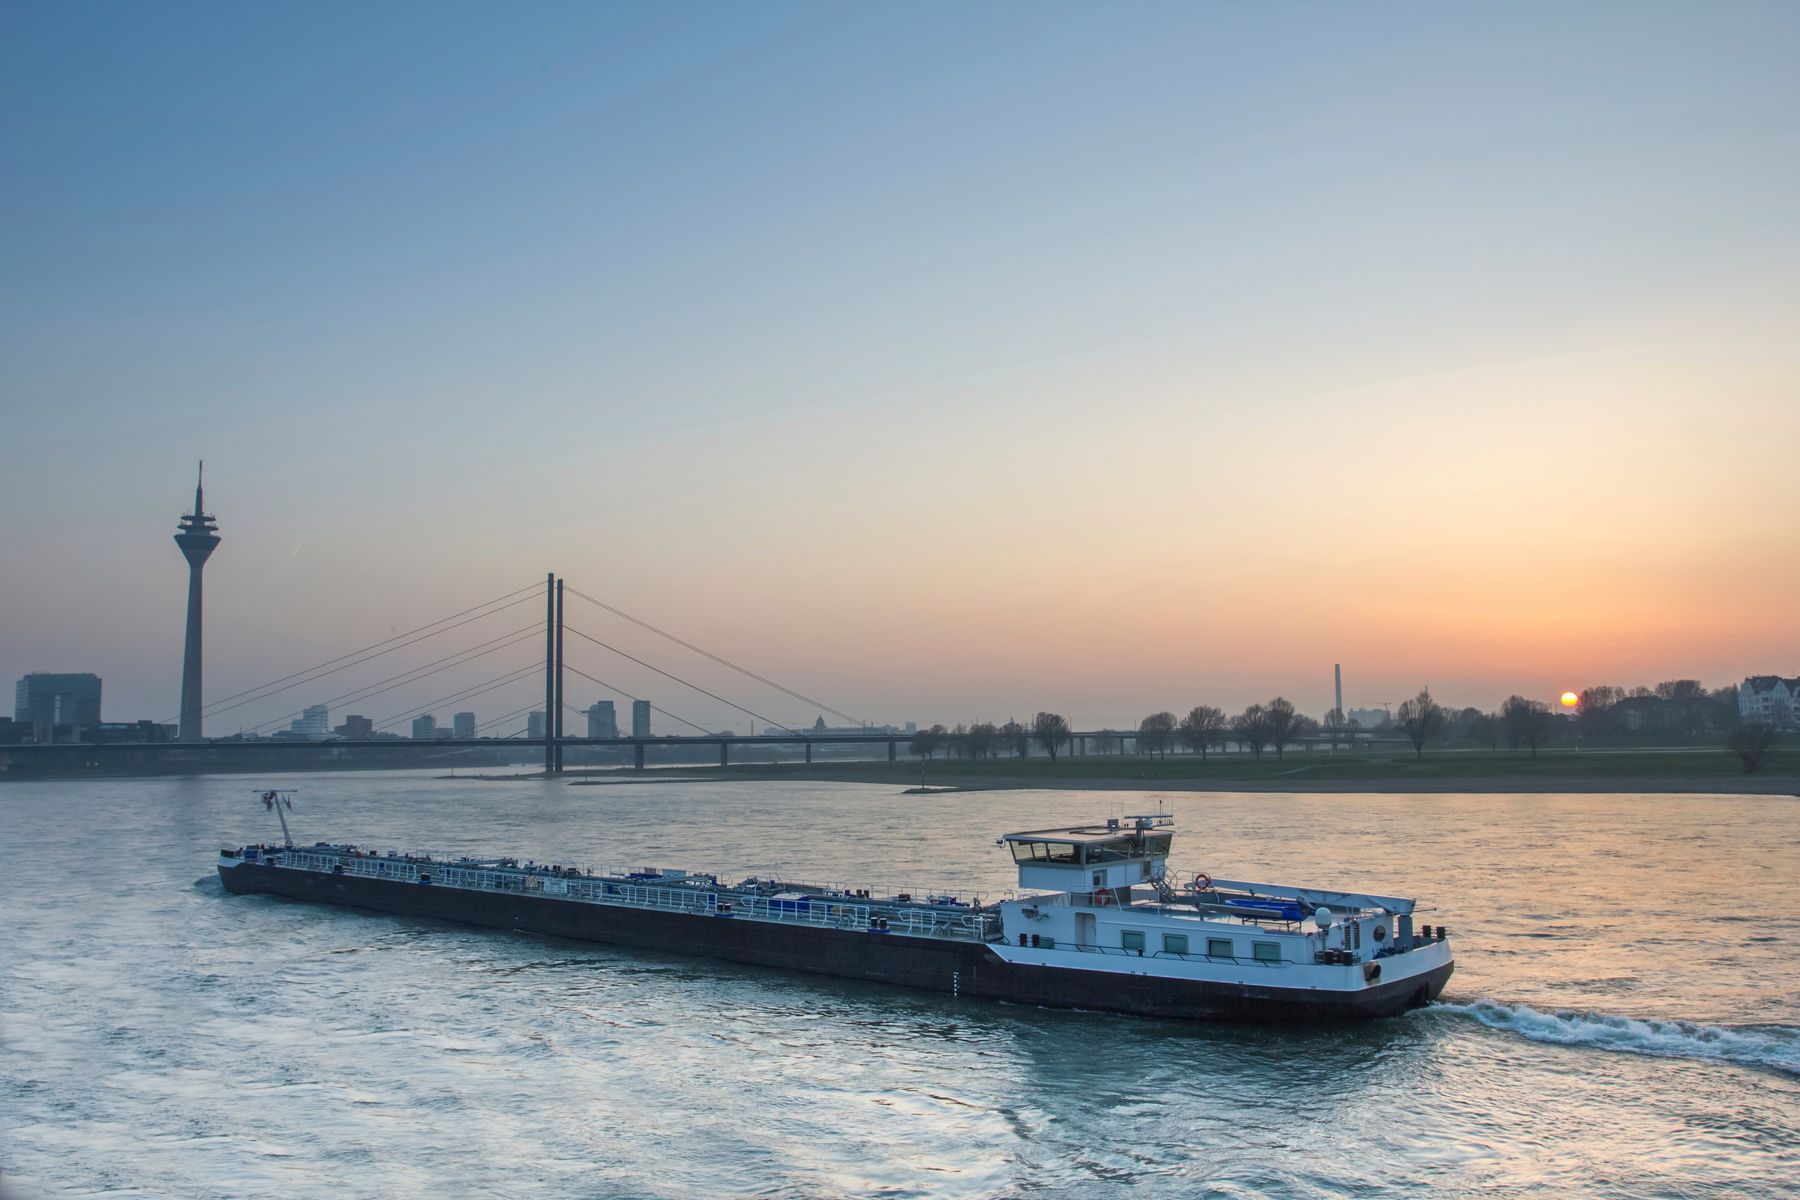 Ship on the Rhine at sunset